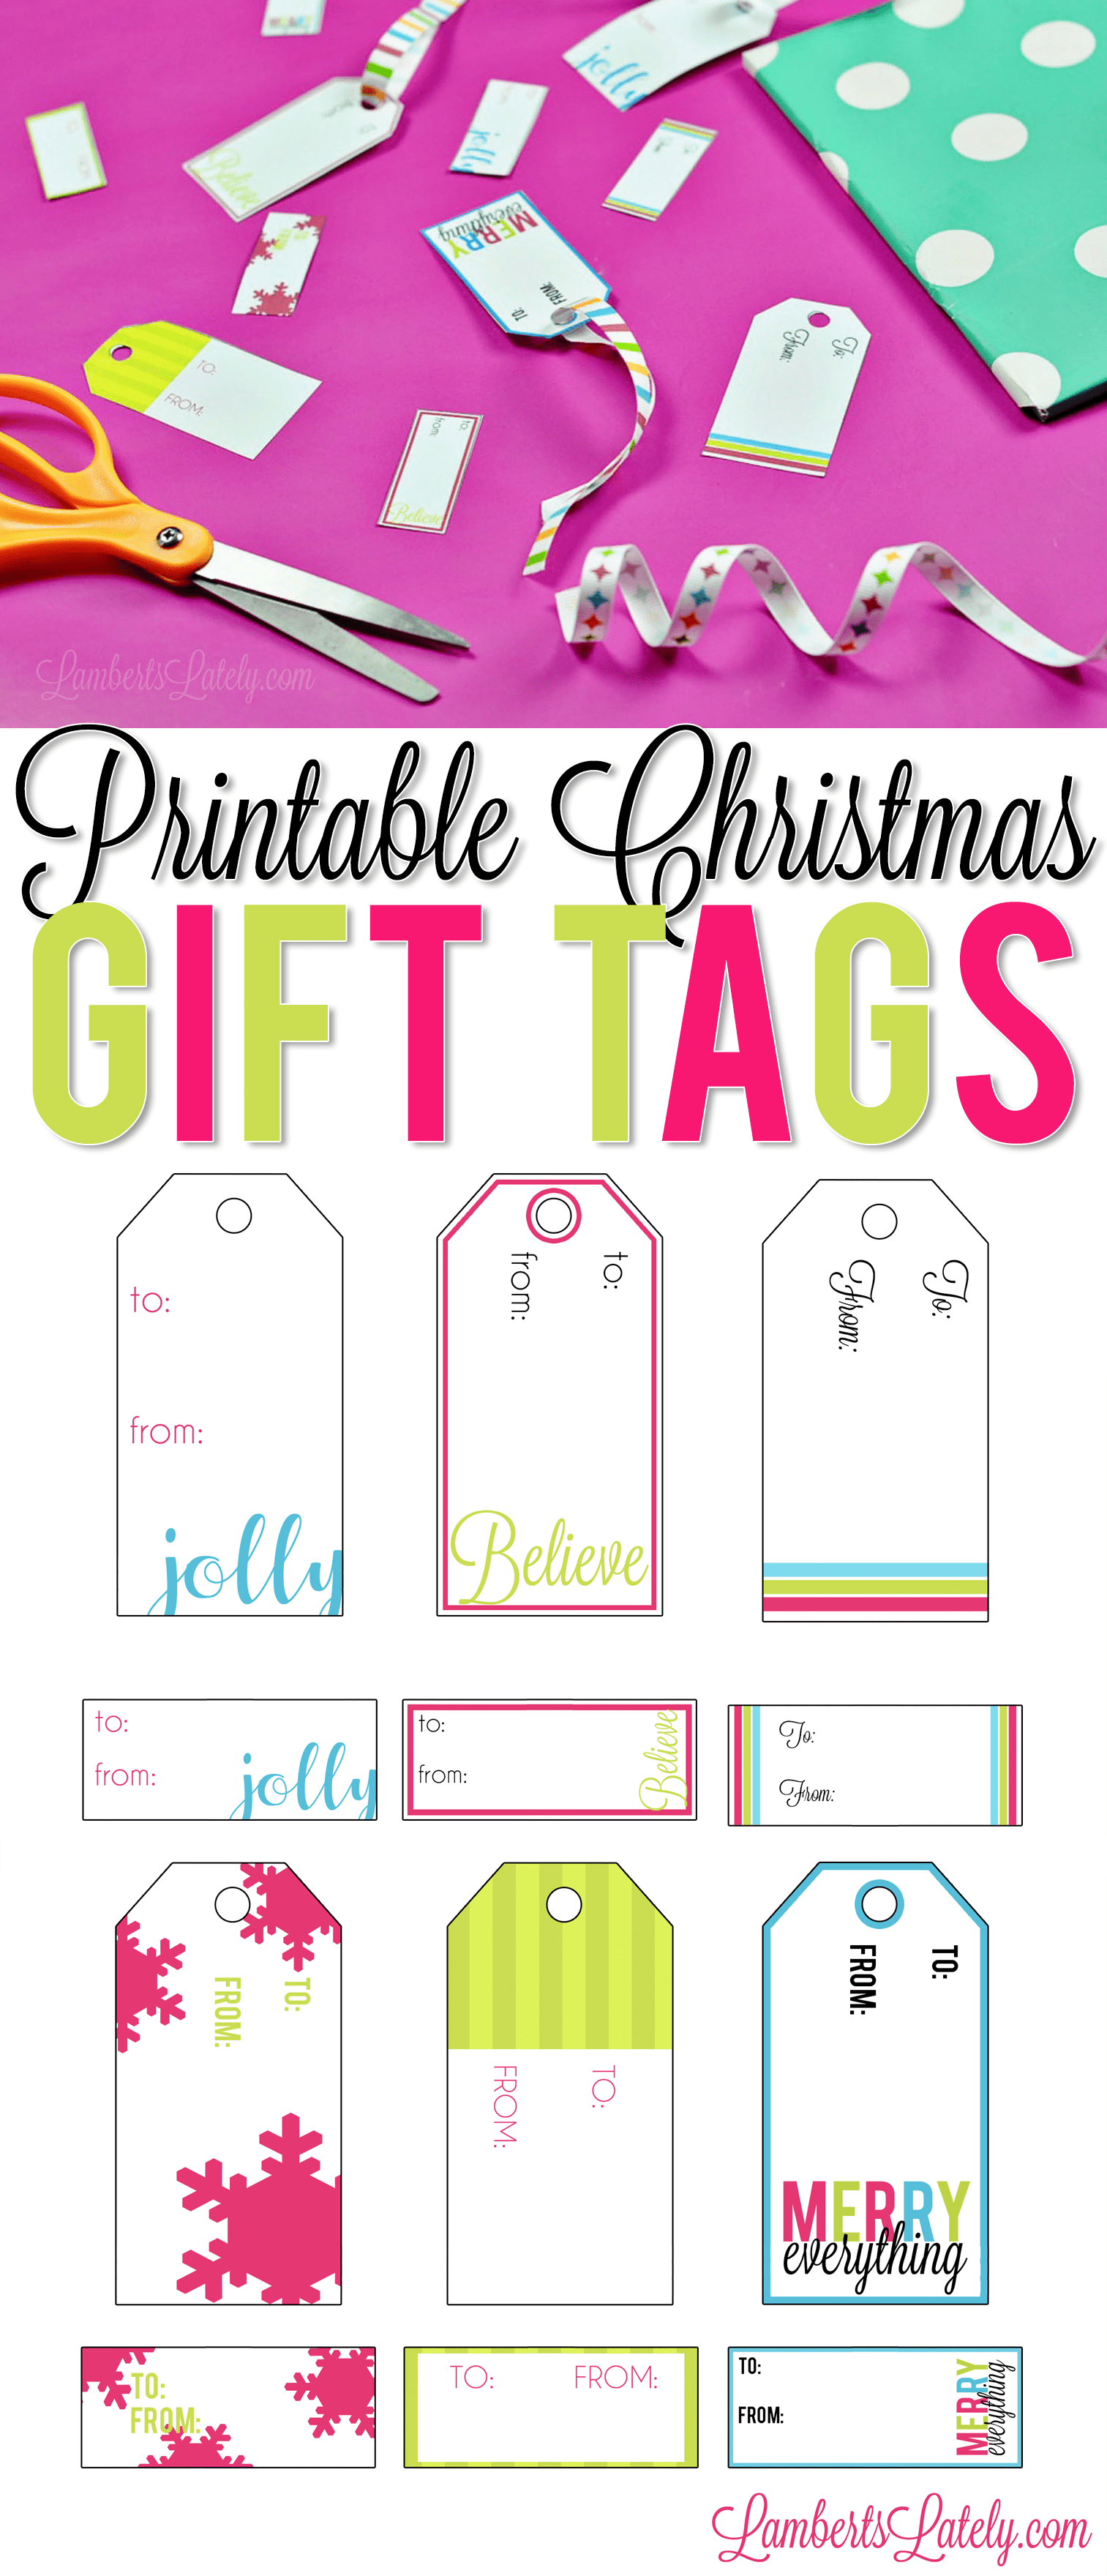 picture relating to Christmas Gift Tags Printable named Printable Xmas Present Tags Lamberts Not long ago